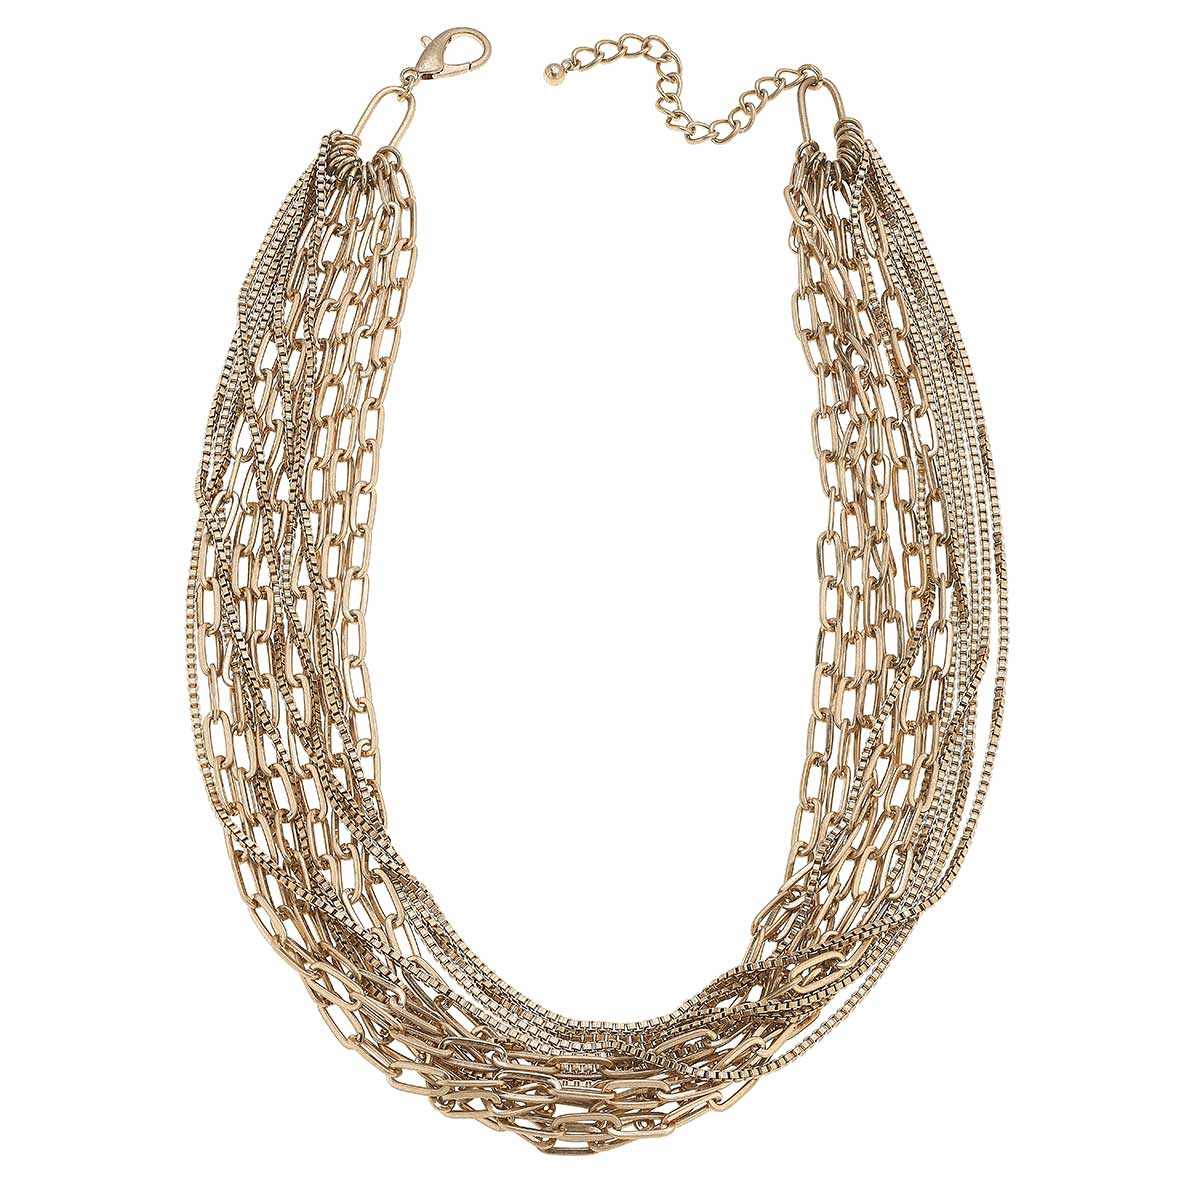 Soren Layered Mixed Media Chain Statement Necklace in Worn Gold